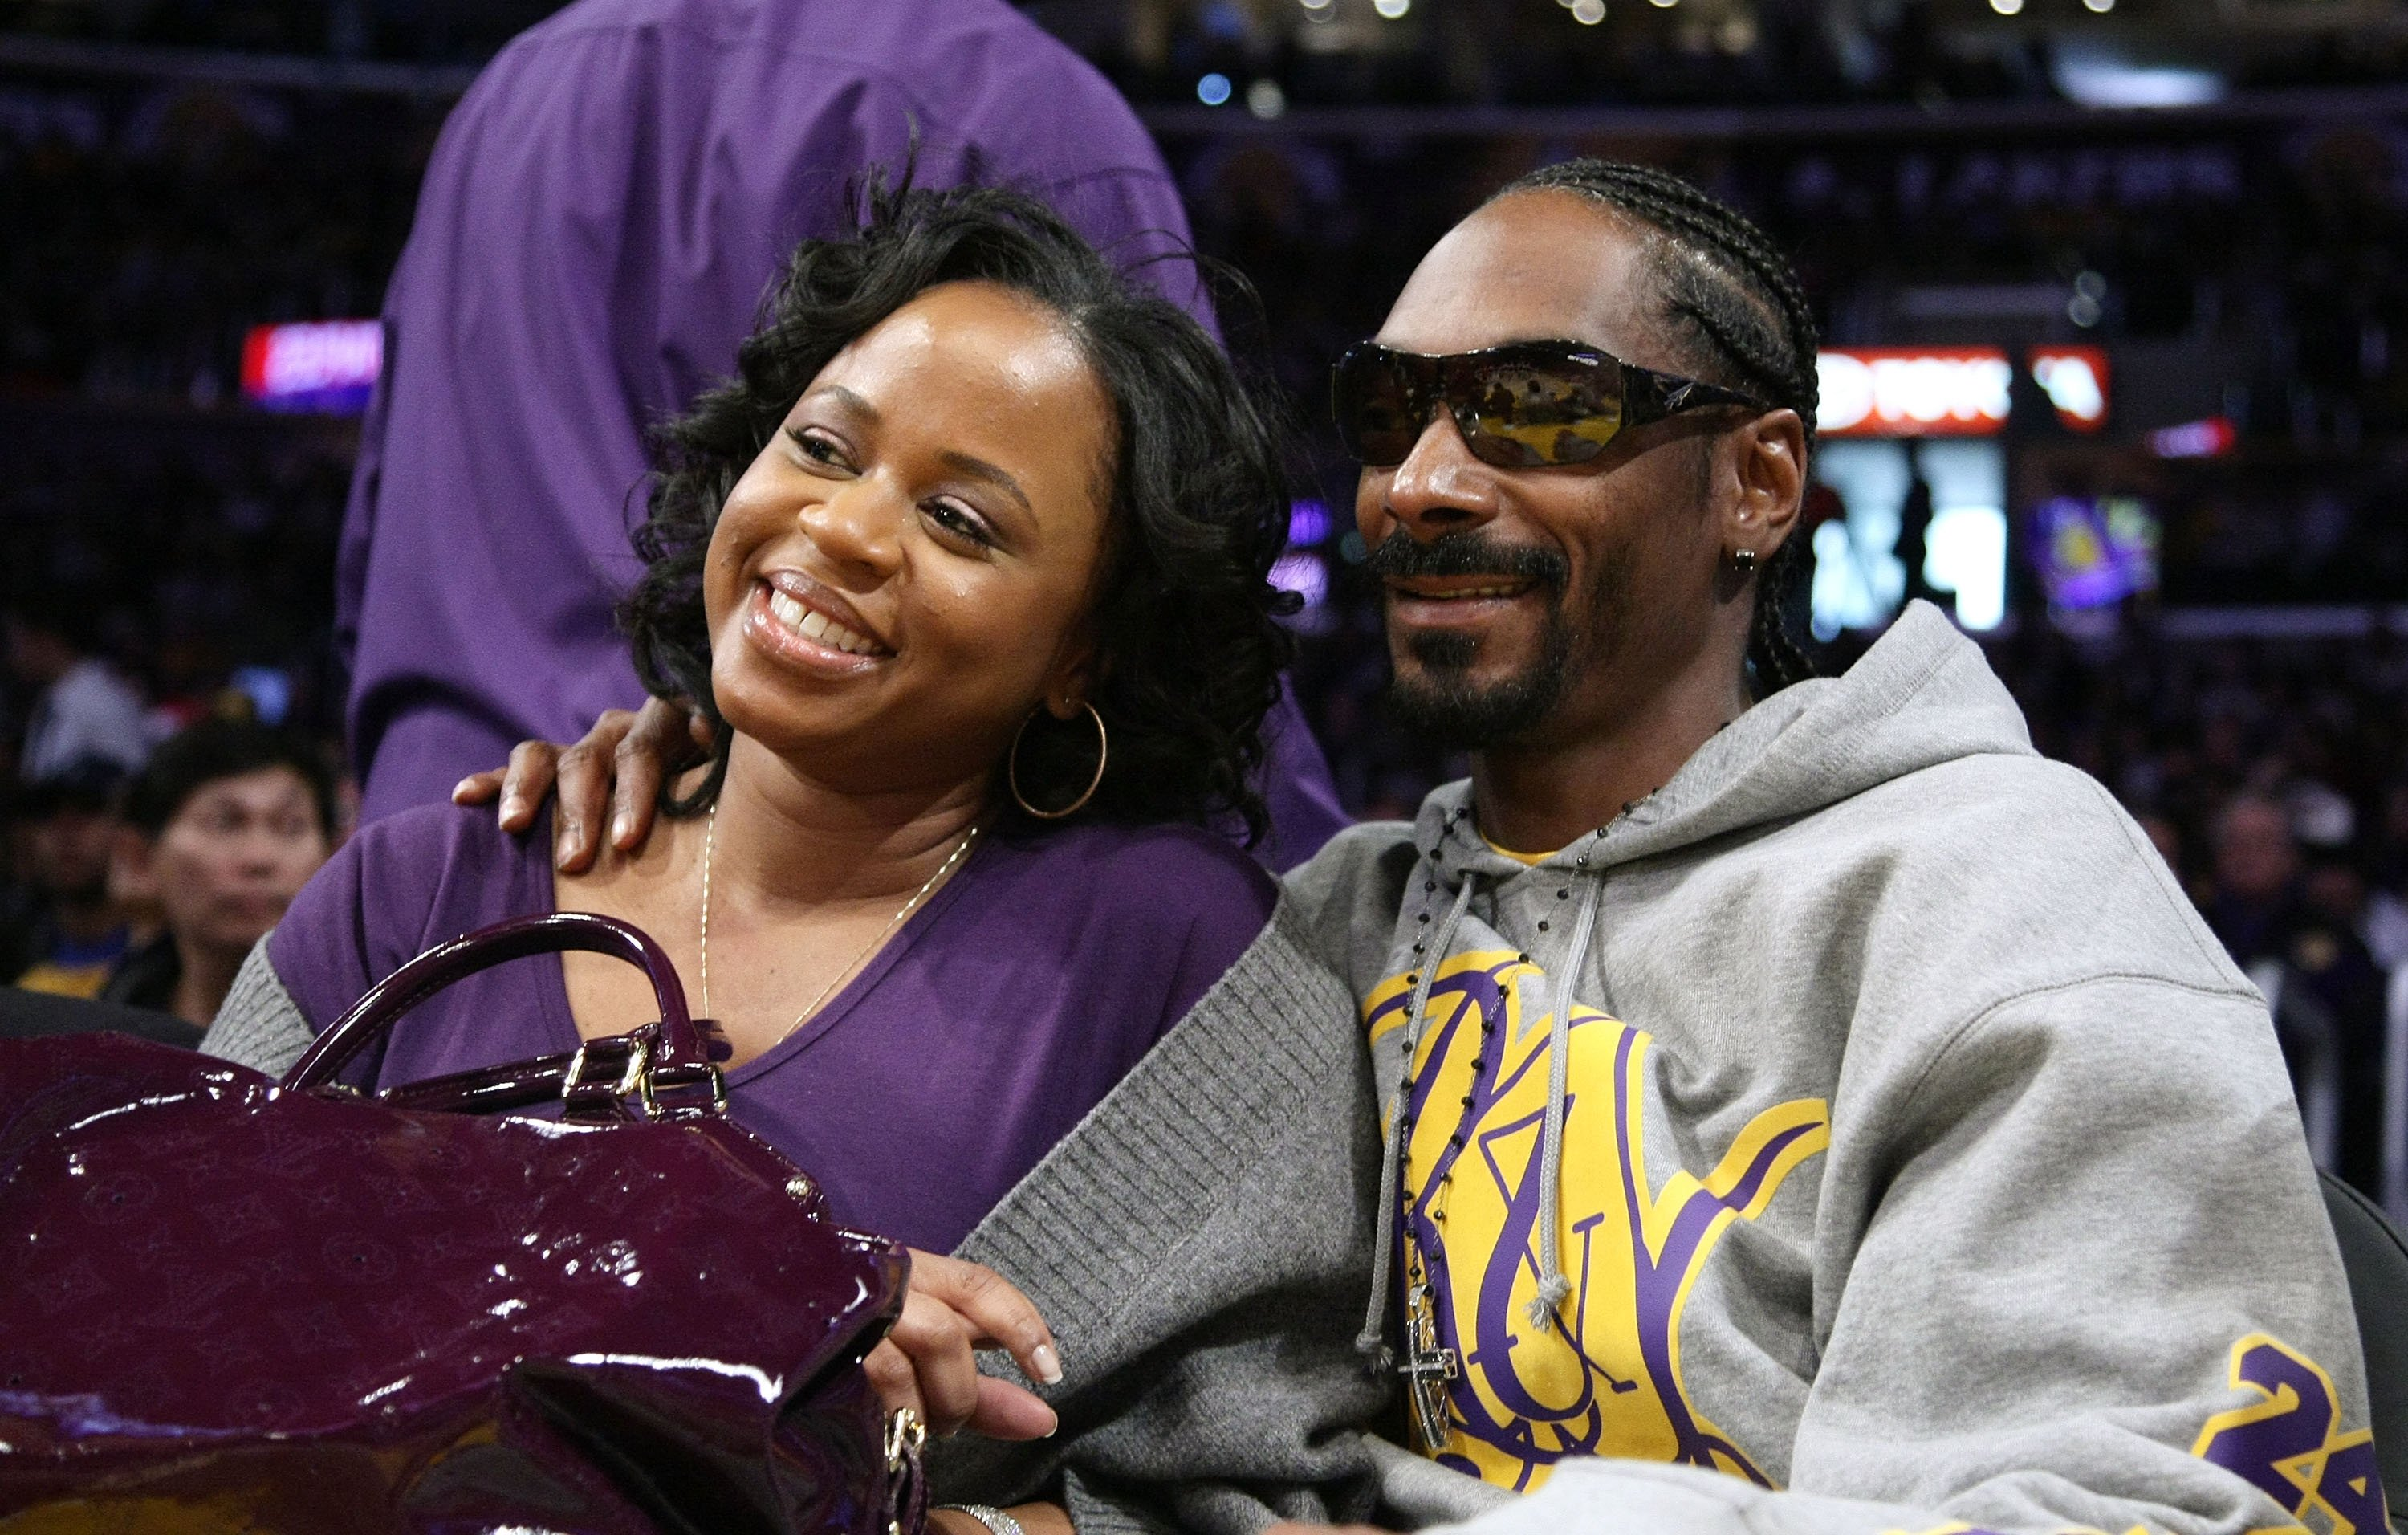 Snoop Dogg and Shante Broadus attend the Los Angeles Lakers vs Boston Celtics game on December 25, 2008   Photo: Getty Images